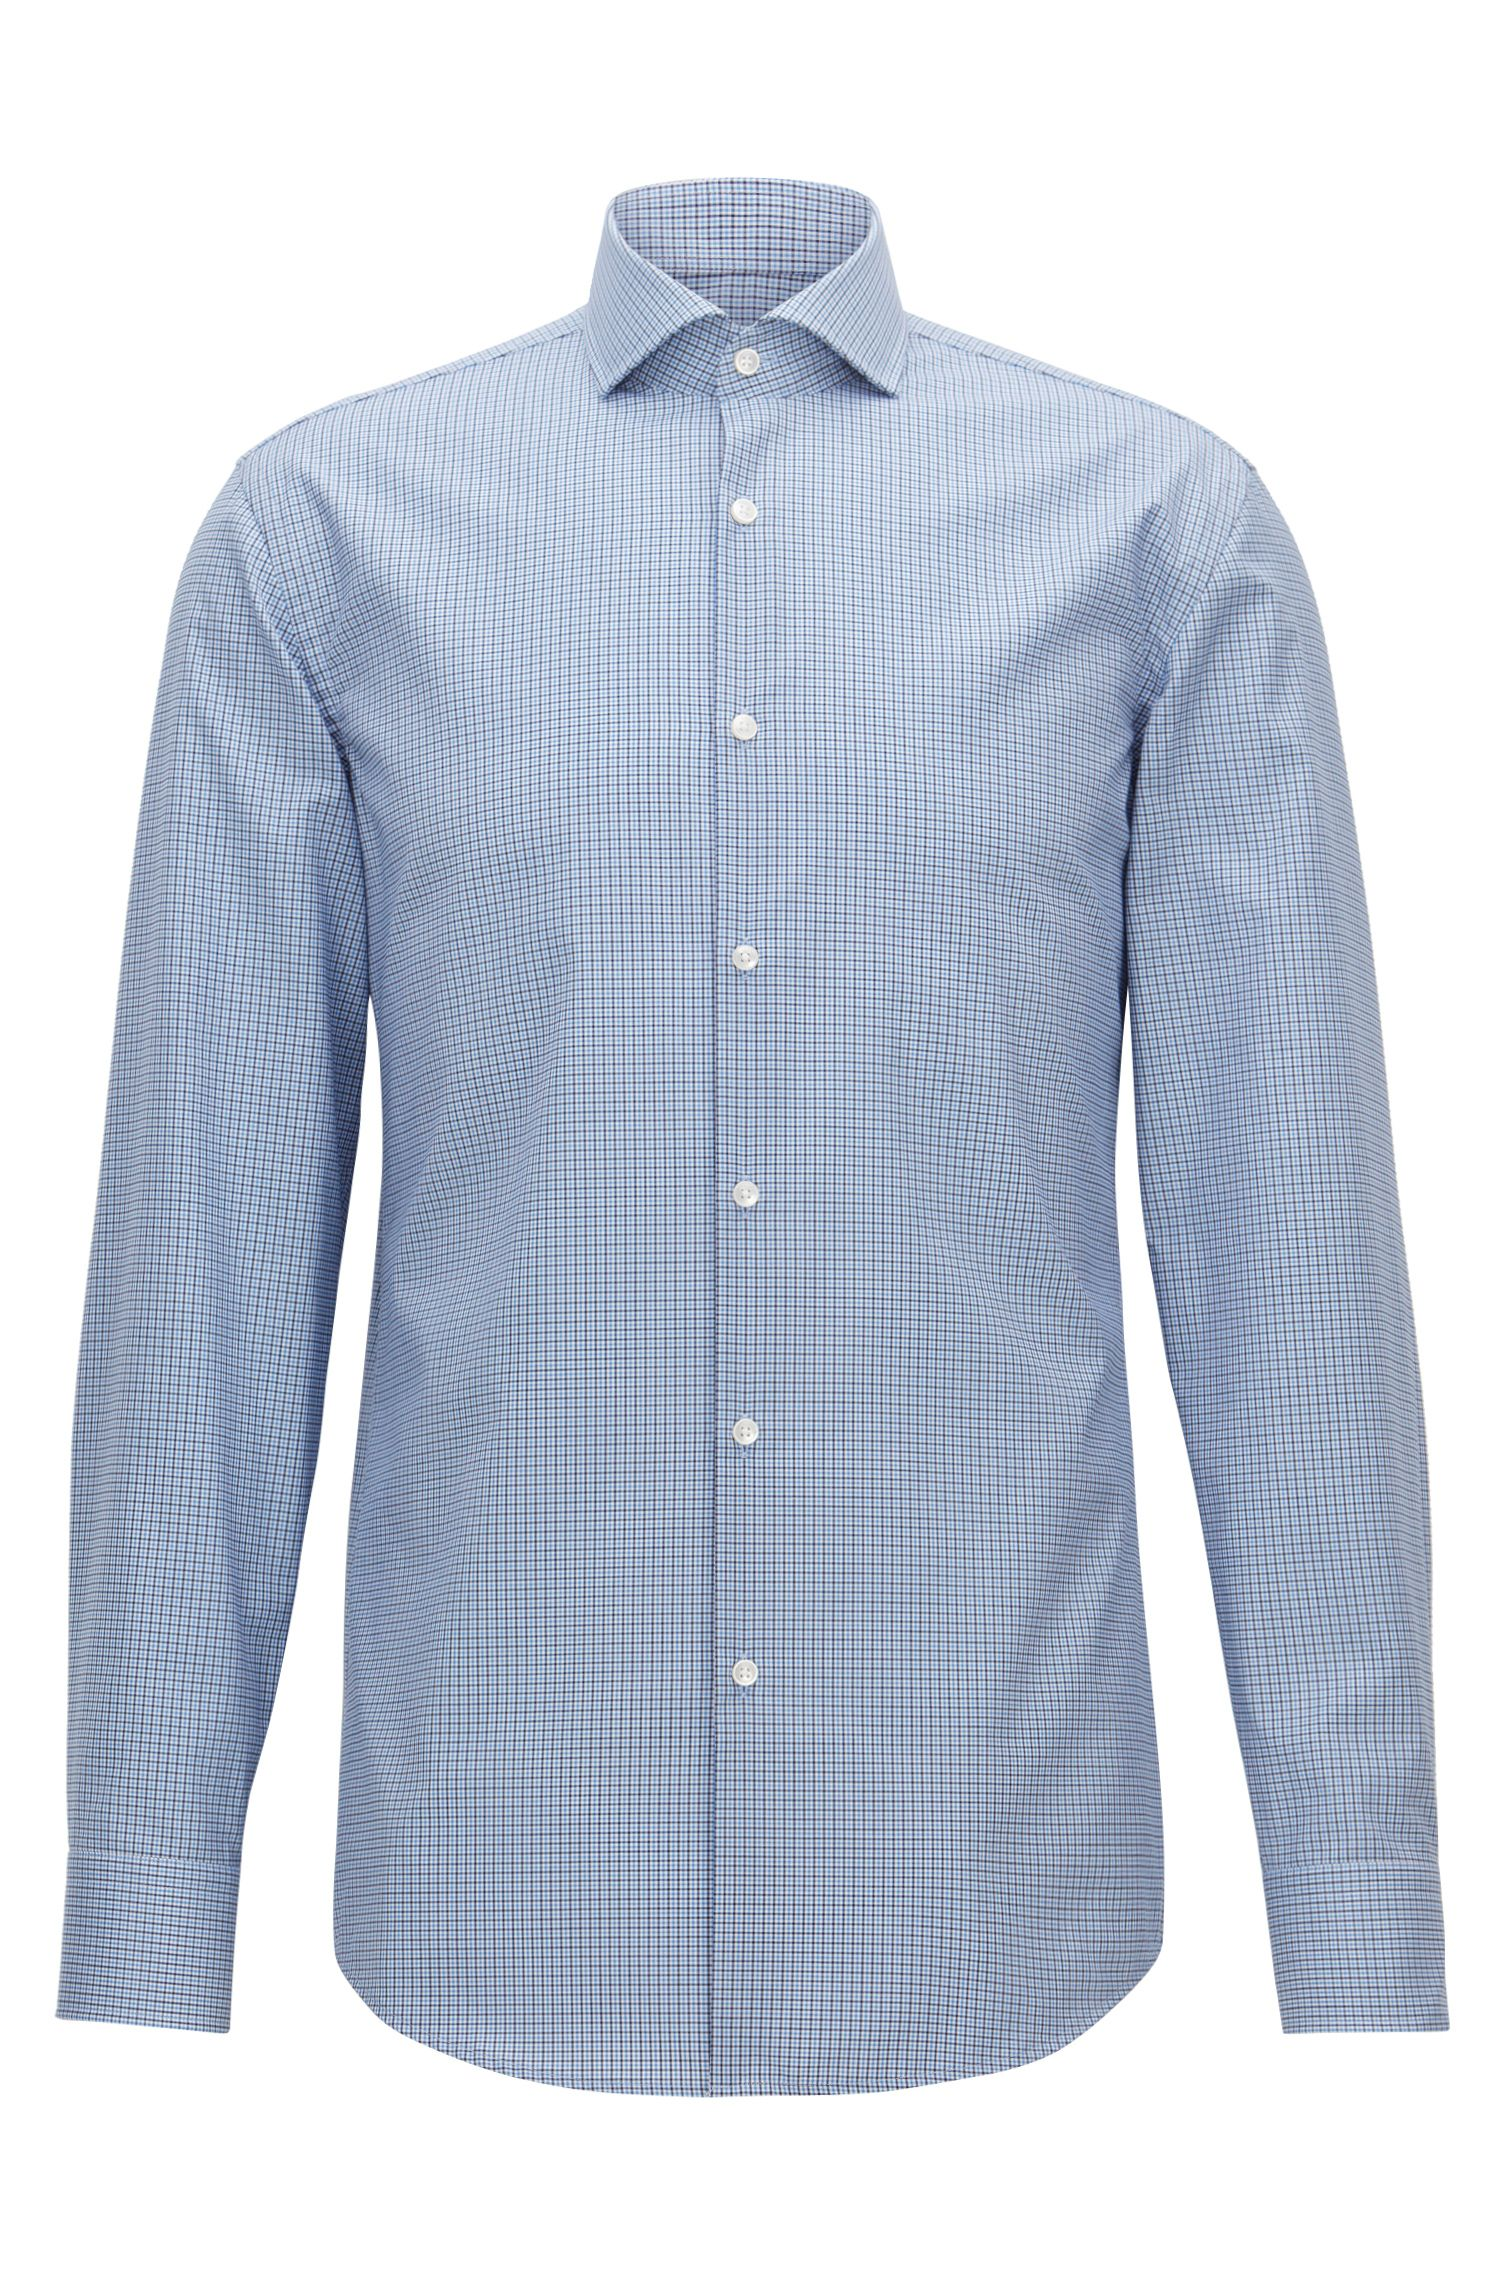 Camicia slim fit facile da stirare in cotone a quadri Vichy